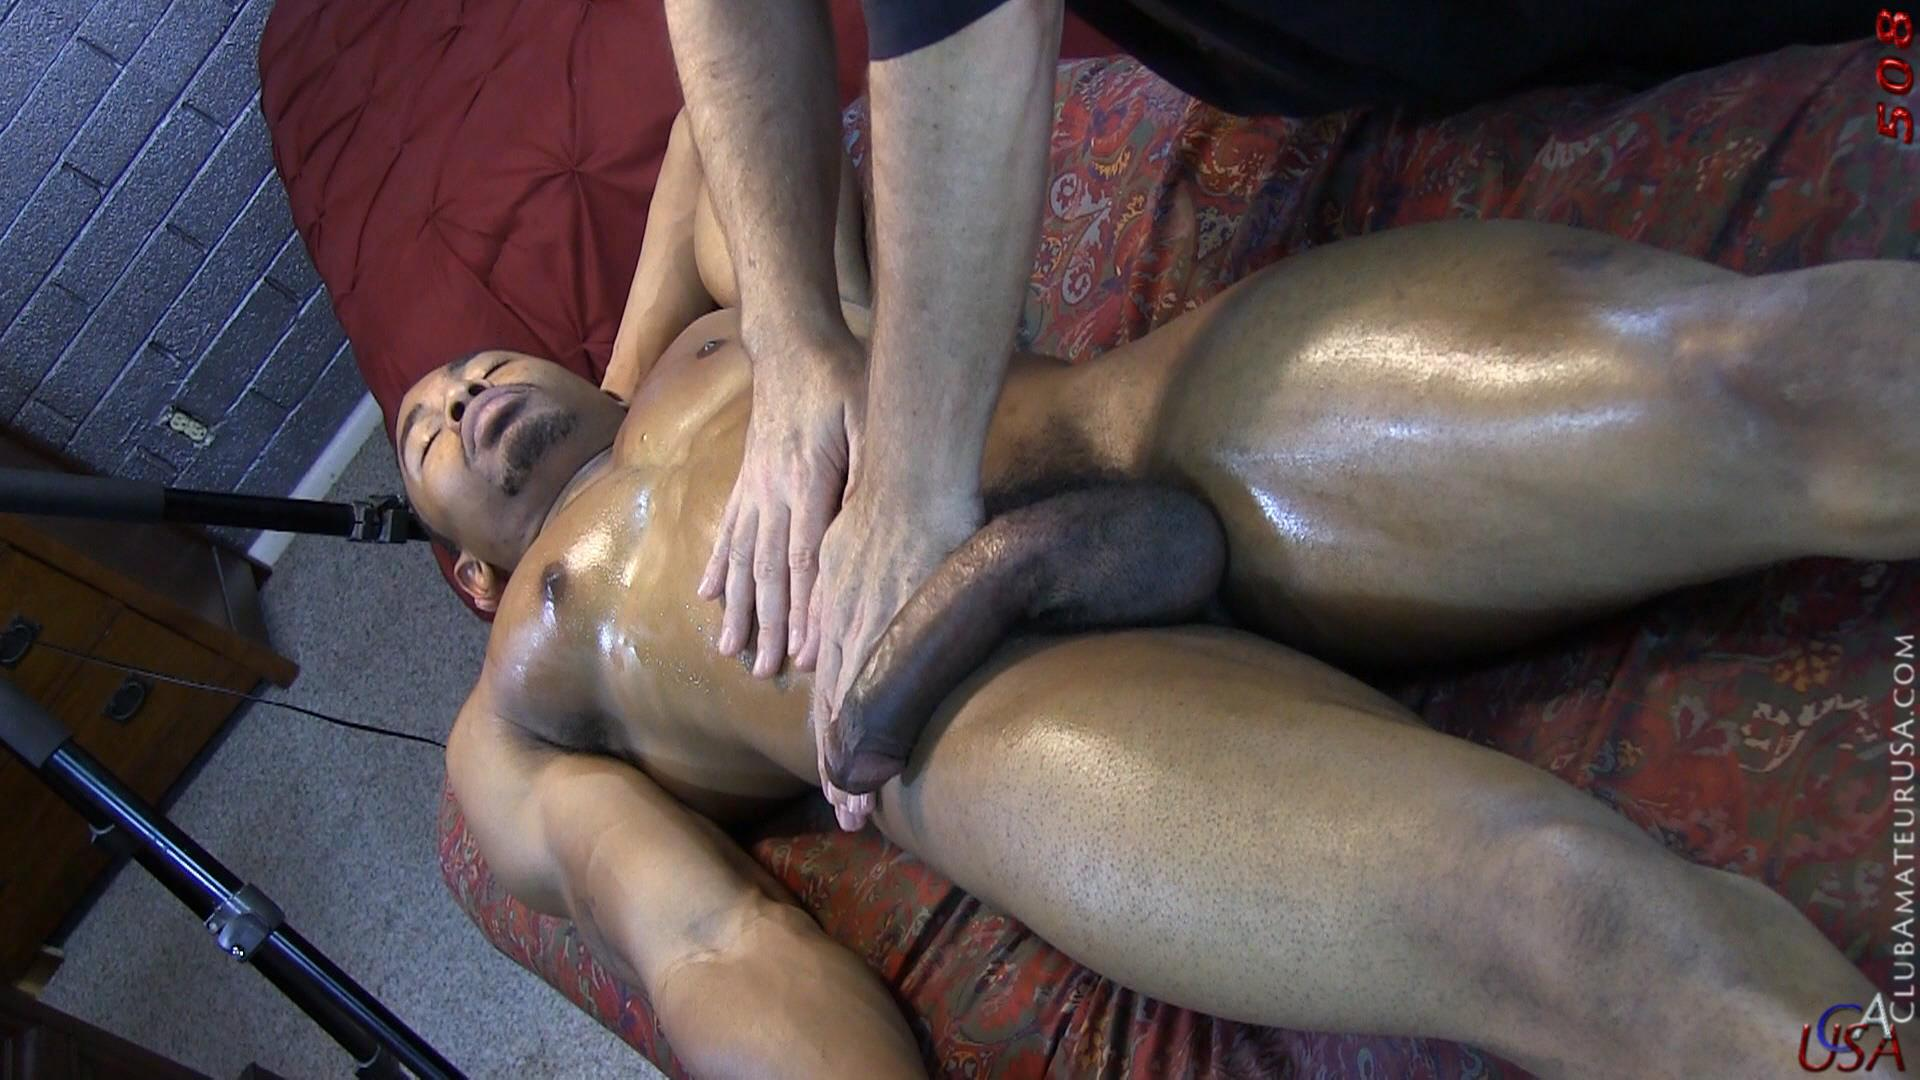 Club Amateur USA Gracen Straight Big Black Cock Getting Sucked With Cum Amateur Gay Porn 19 Straight Ghetto Thug Gets A Massage With A Happy Ending From A Guy